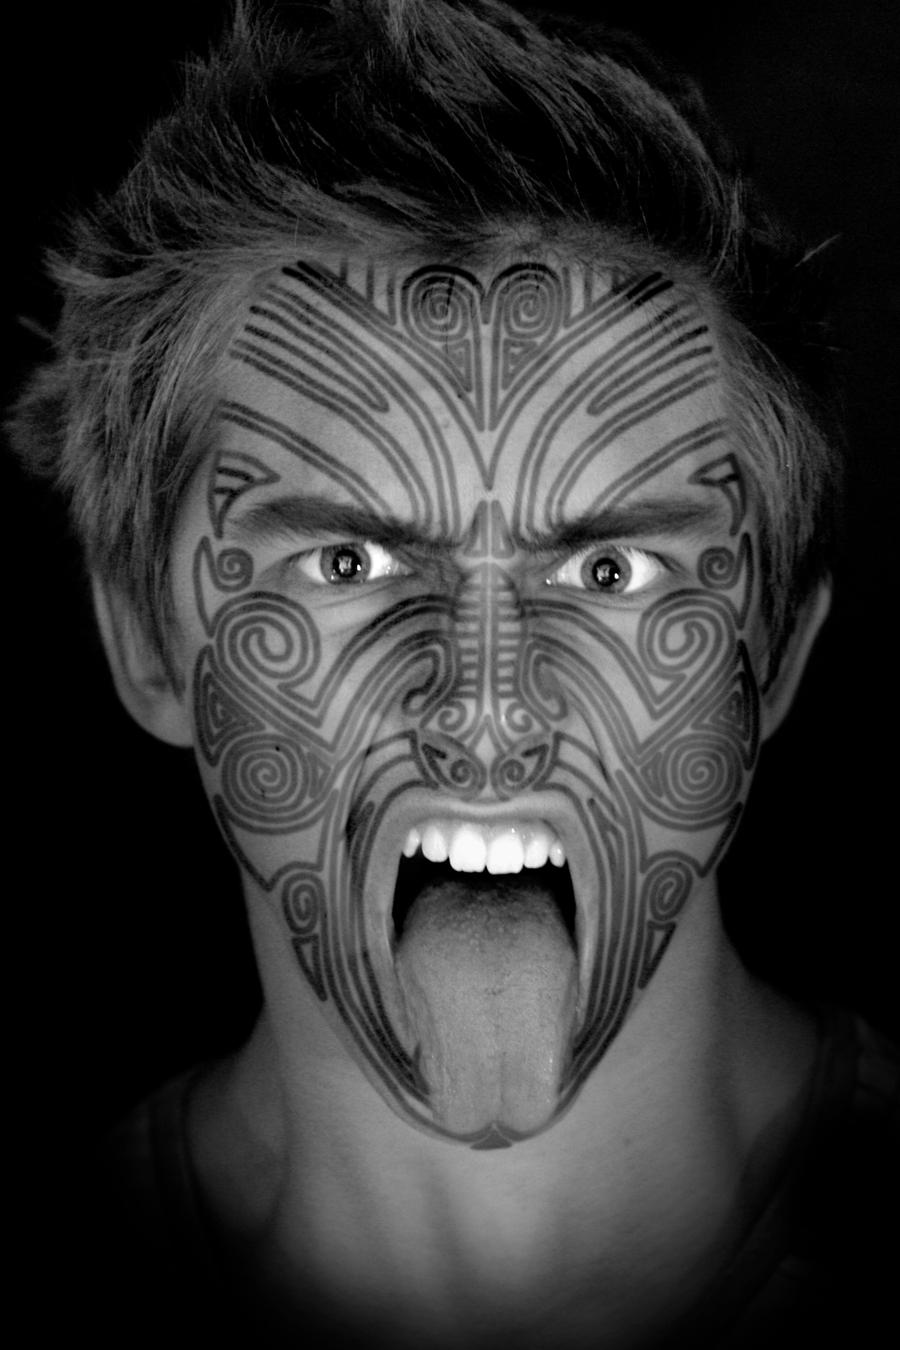 maori and swedes essay Australia and new zealand are both home to indigenous tribes that have struggled for years to retain their culture and people both the aboriginals of australia and the maori of new zealand share an unfortunate history of colonization.